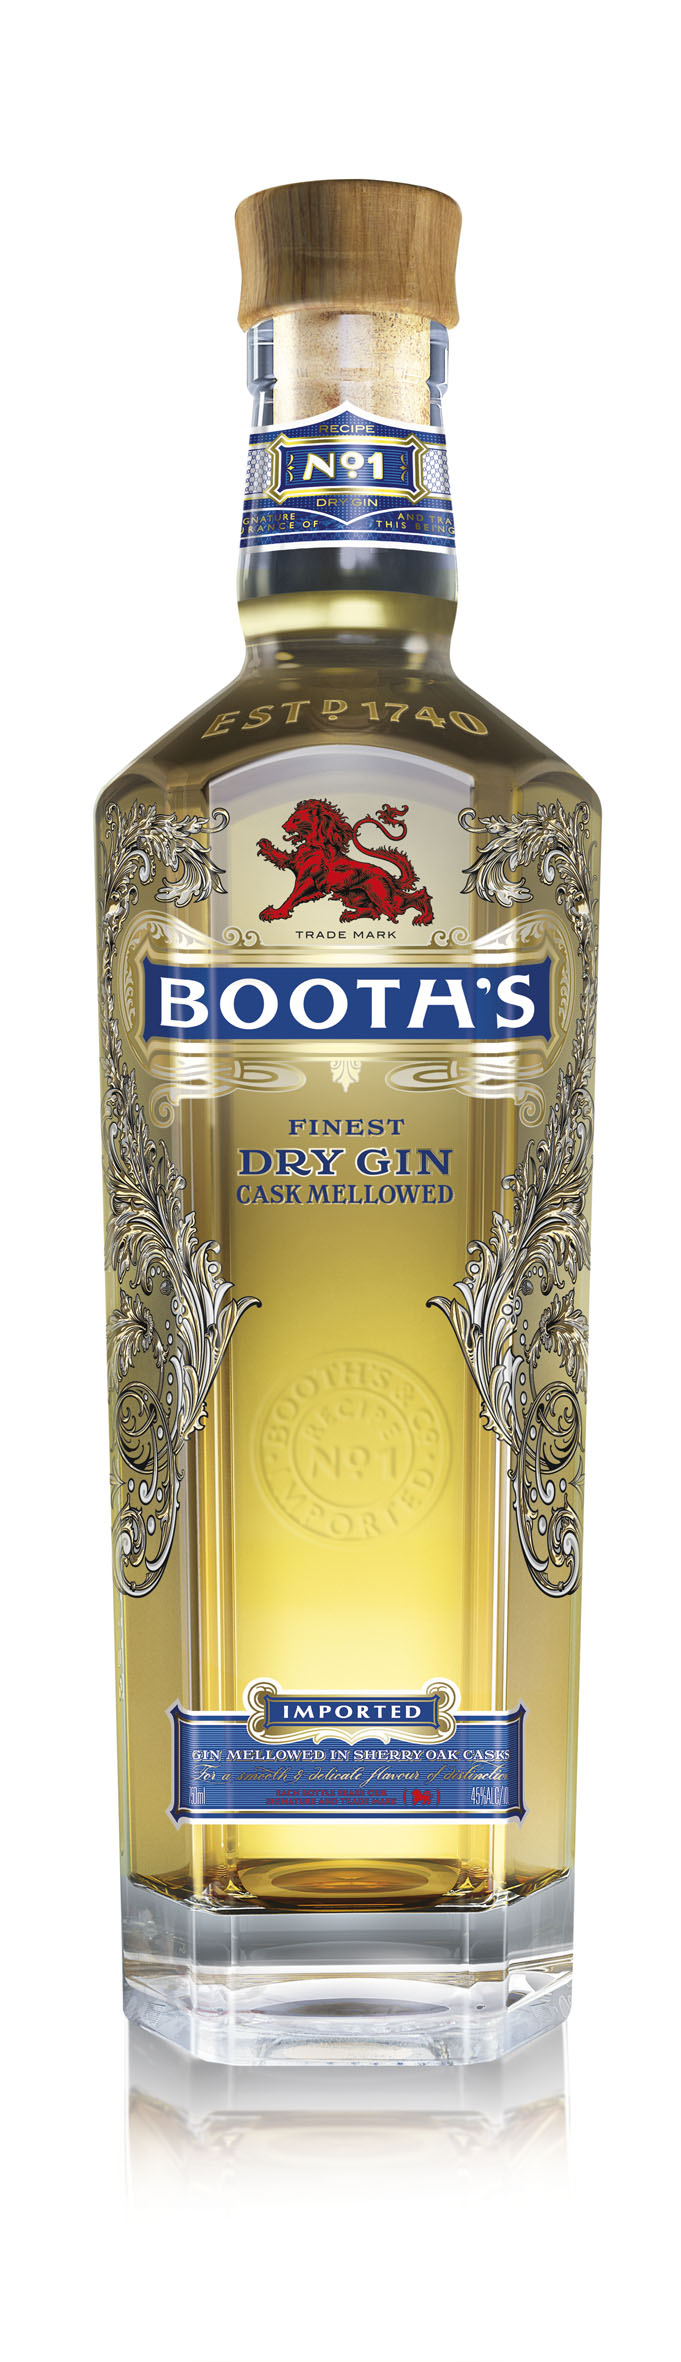 Booth's Recipe No. 1 Finest Dry Gin Cask Mellowed